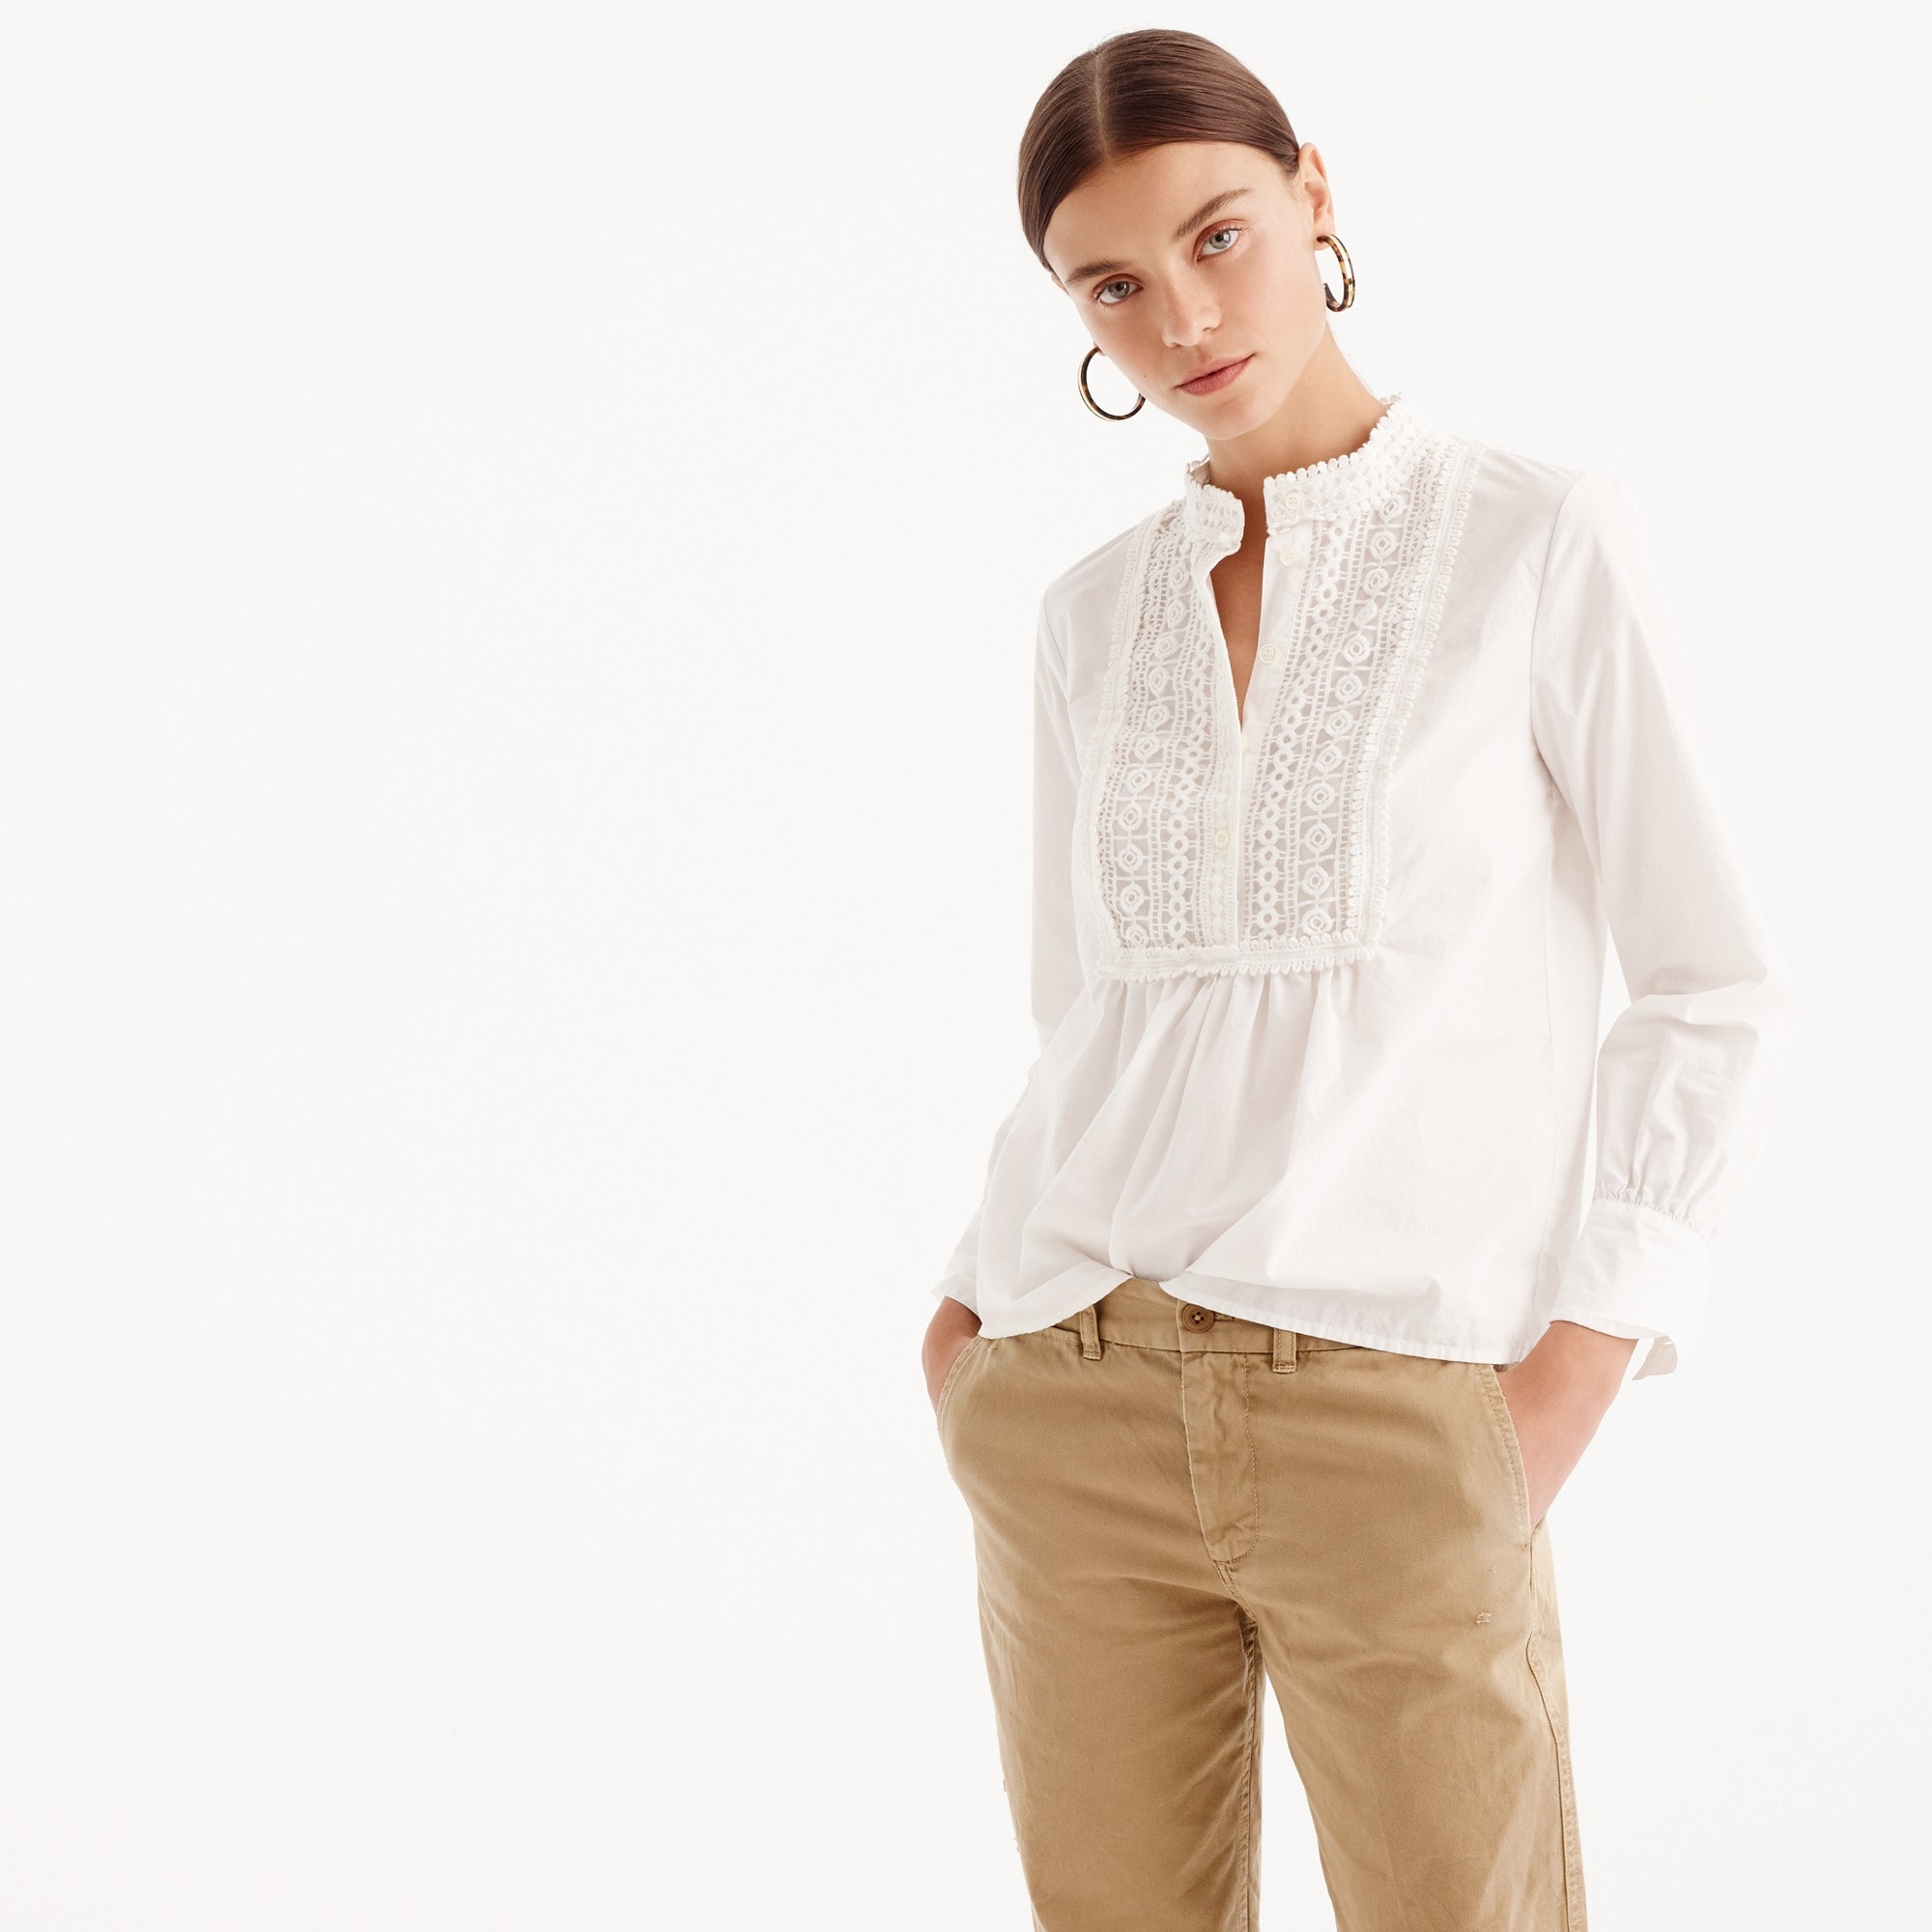 Image 1 for Petite Popover shirt with lace bib